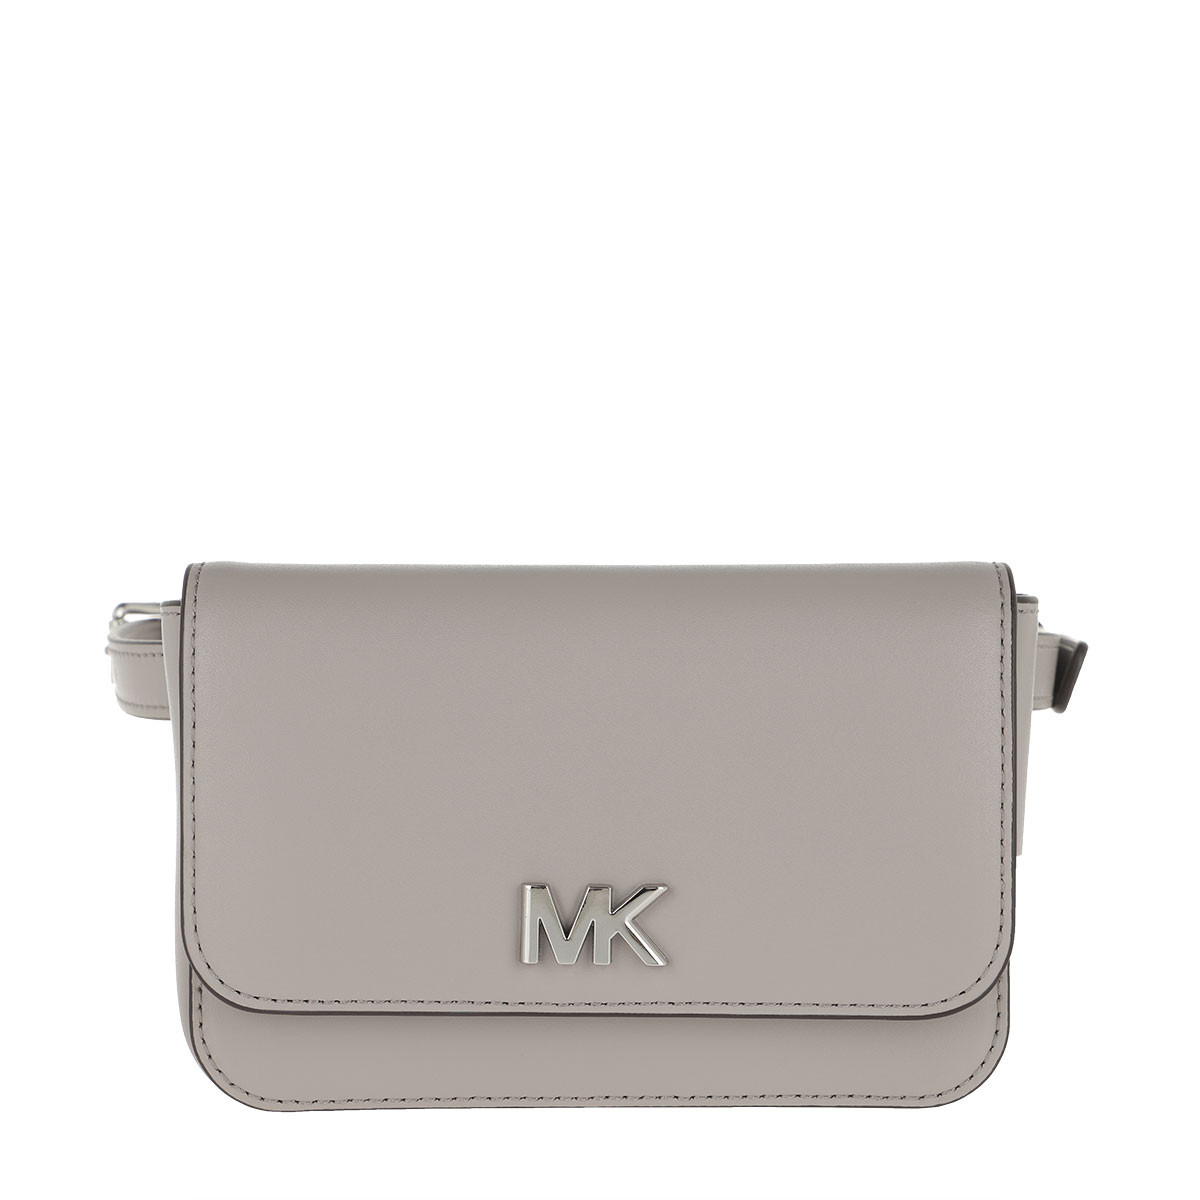 Michael Kors Gürteltasche - Mott Belt Bag Pearl Grey - in grau - für Damen